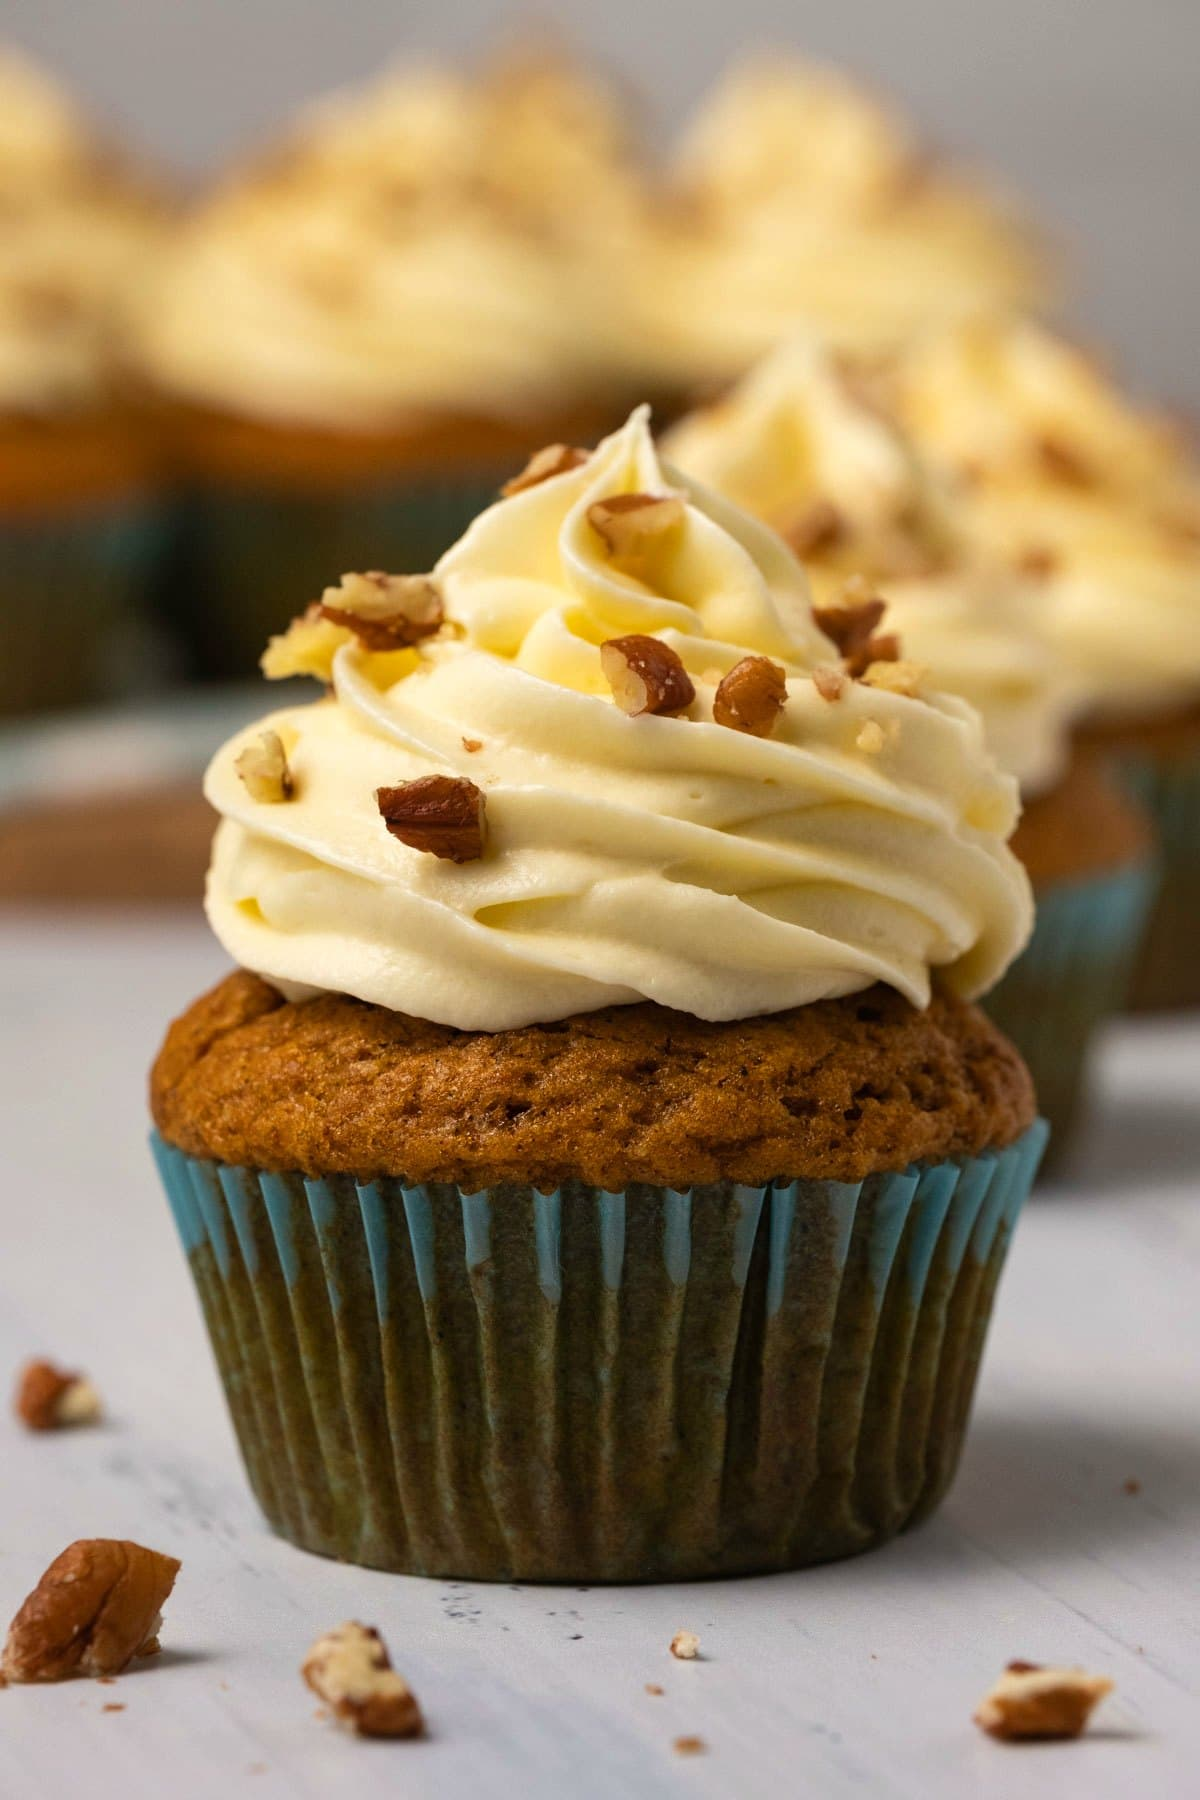 Pumpkin cupcake with cream cheese frosting and chopped pecans.